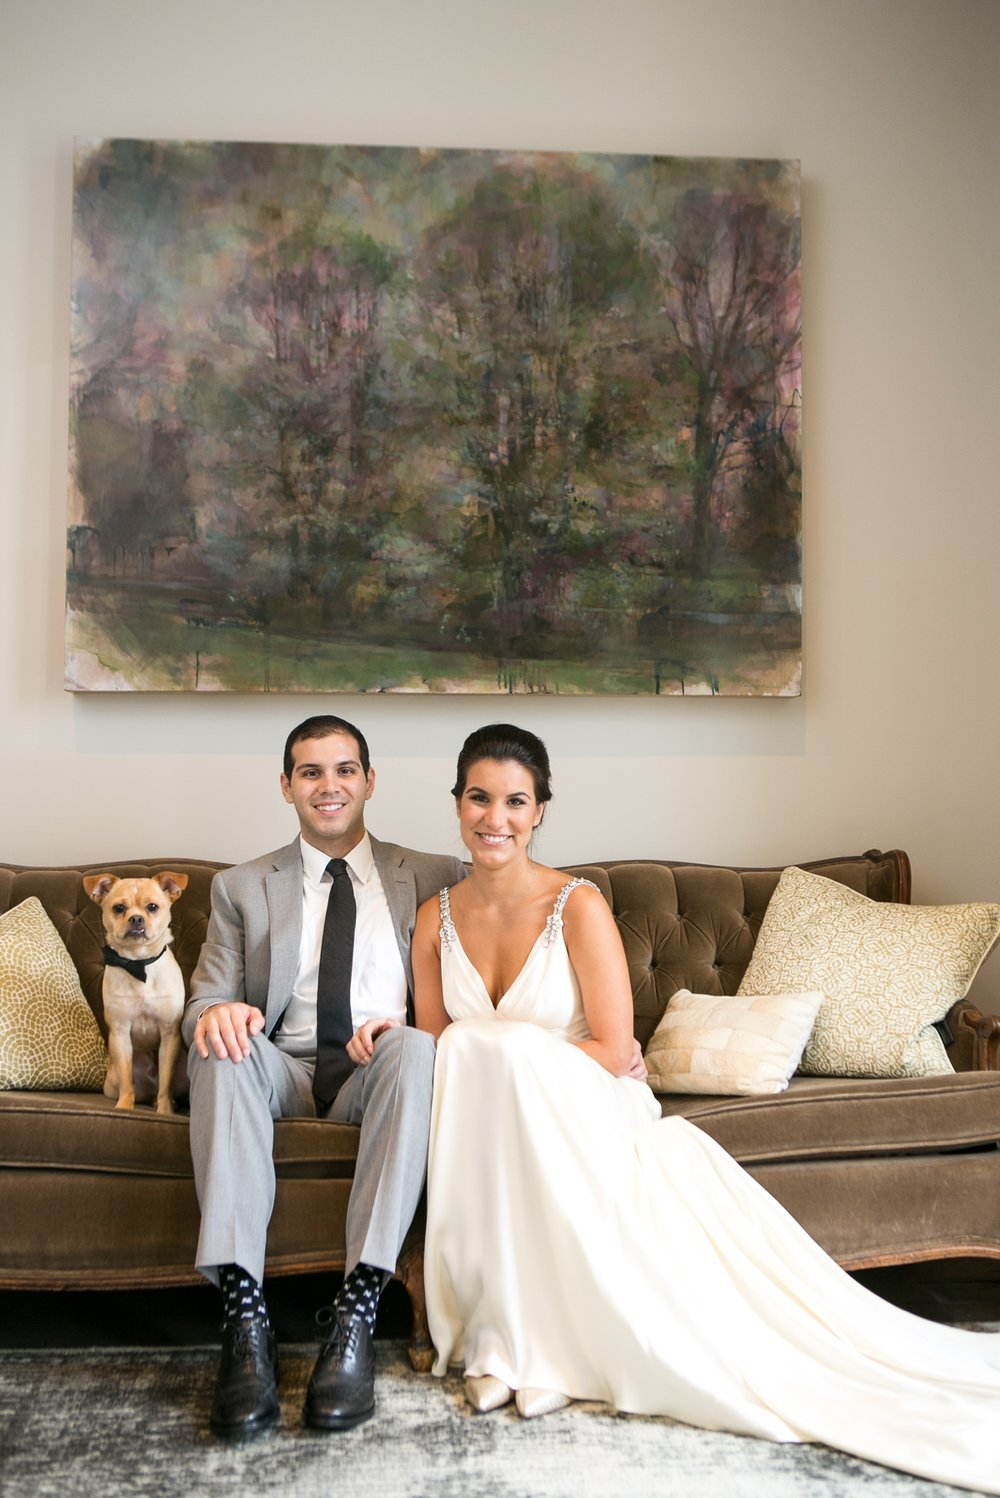 Cordelle Wedding Photographer | Wedding with Dogs